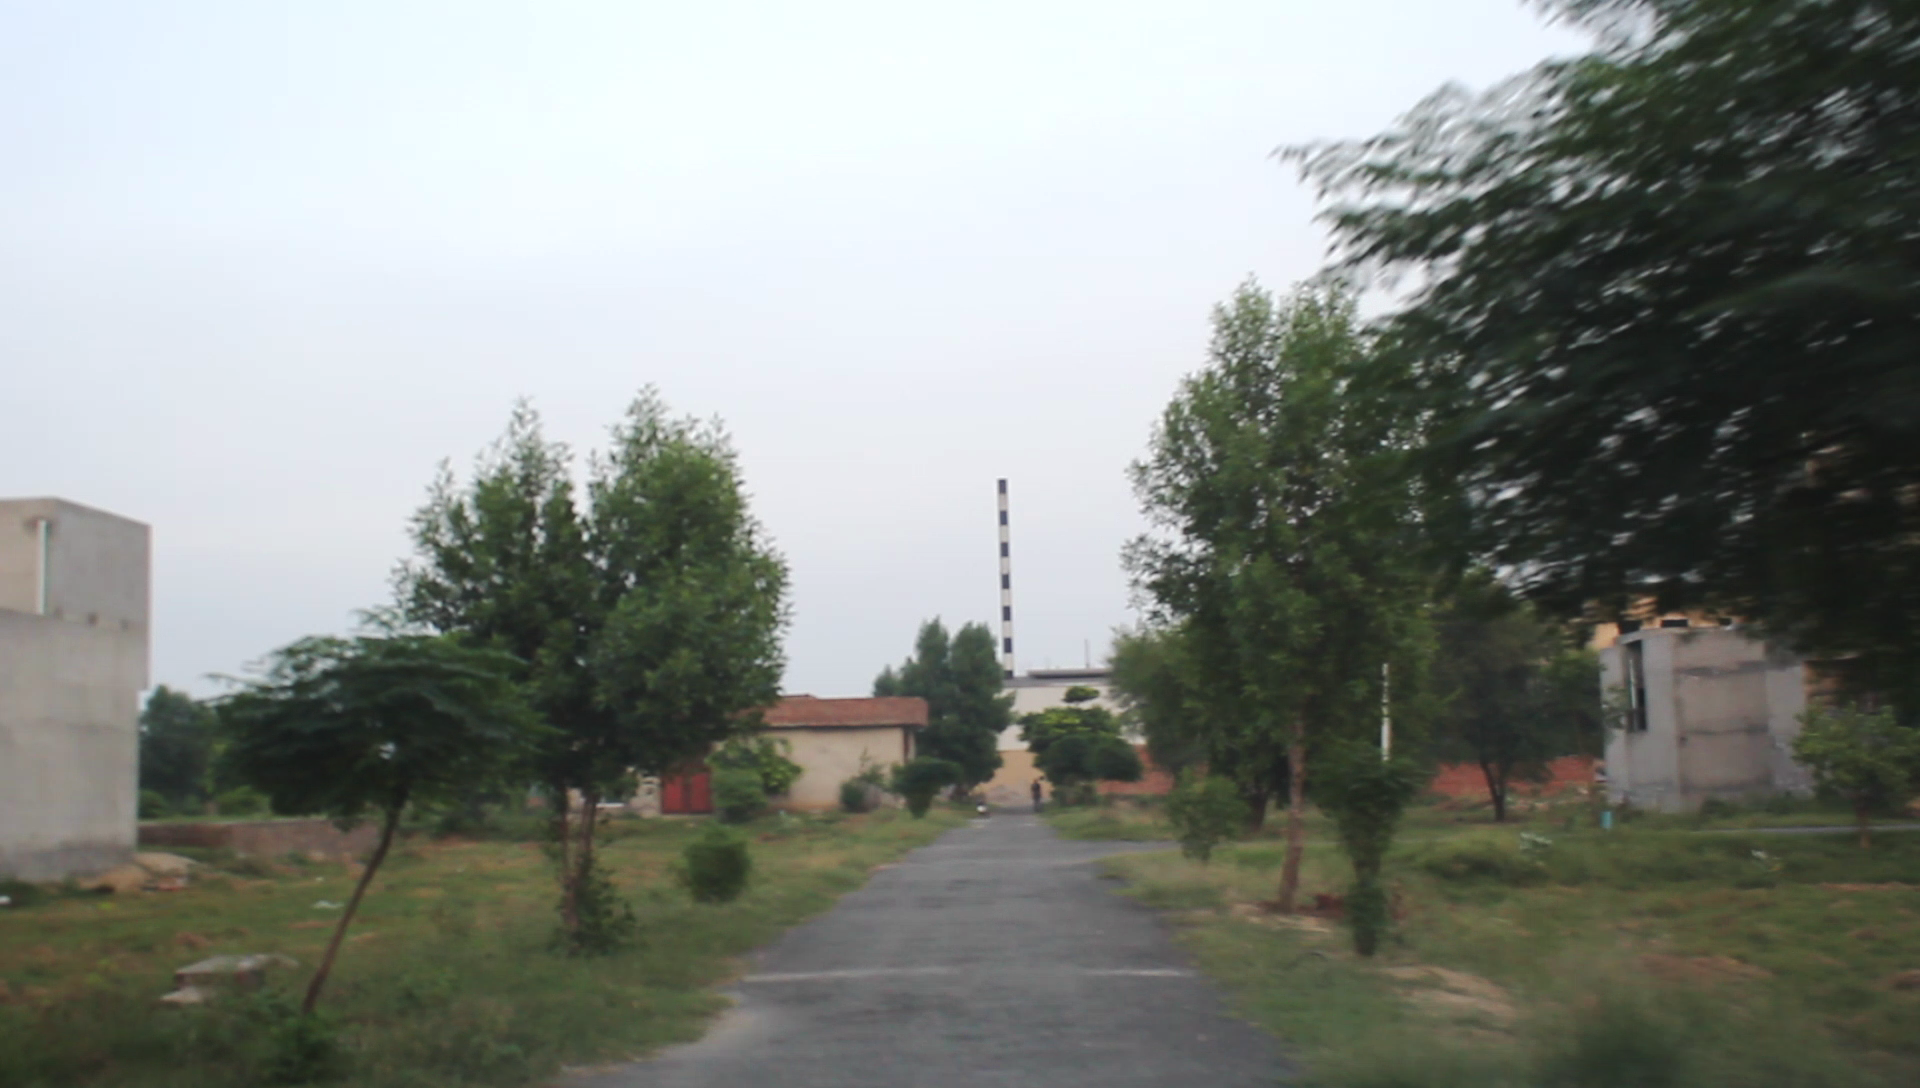 5 Marla Residential Plot For Sale Very Good Location And Very Low Price